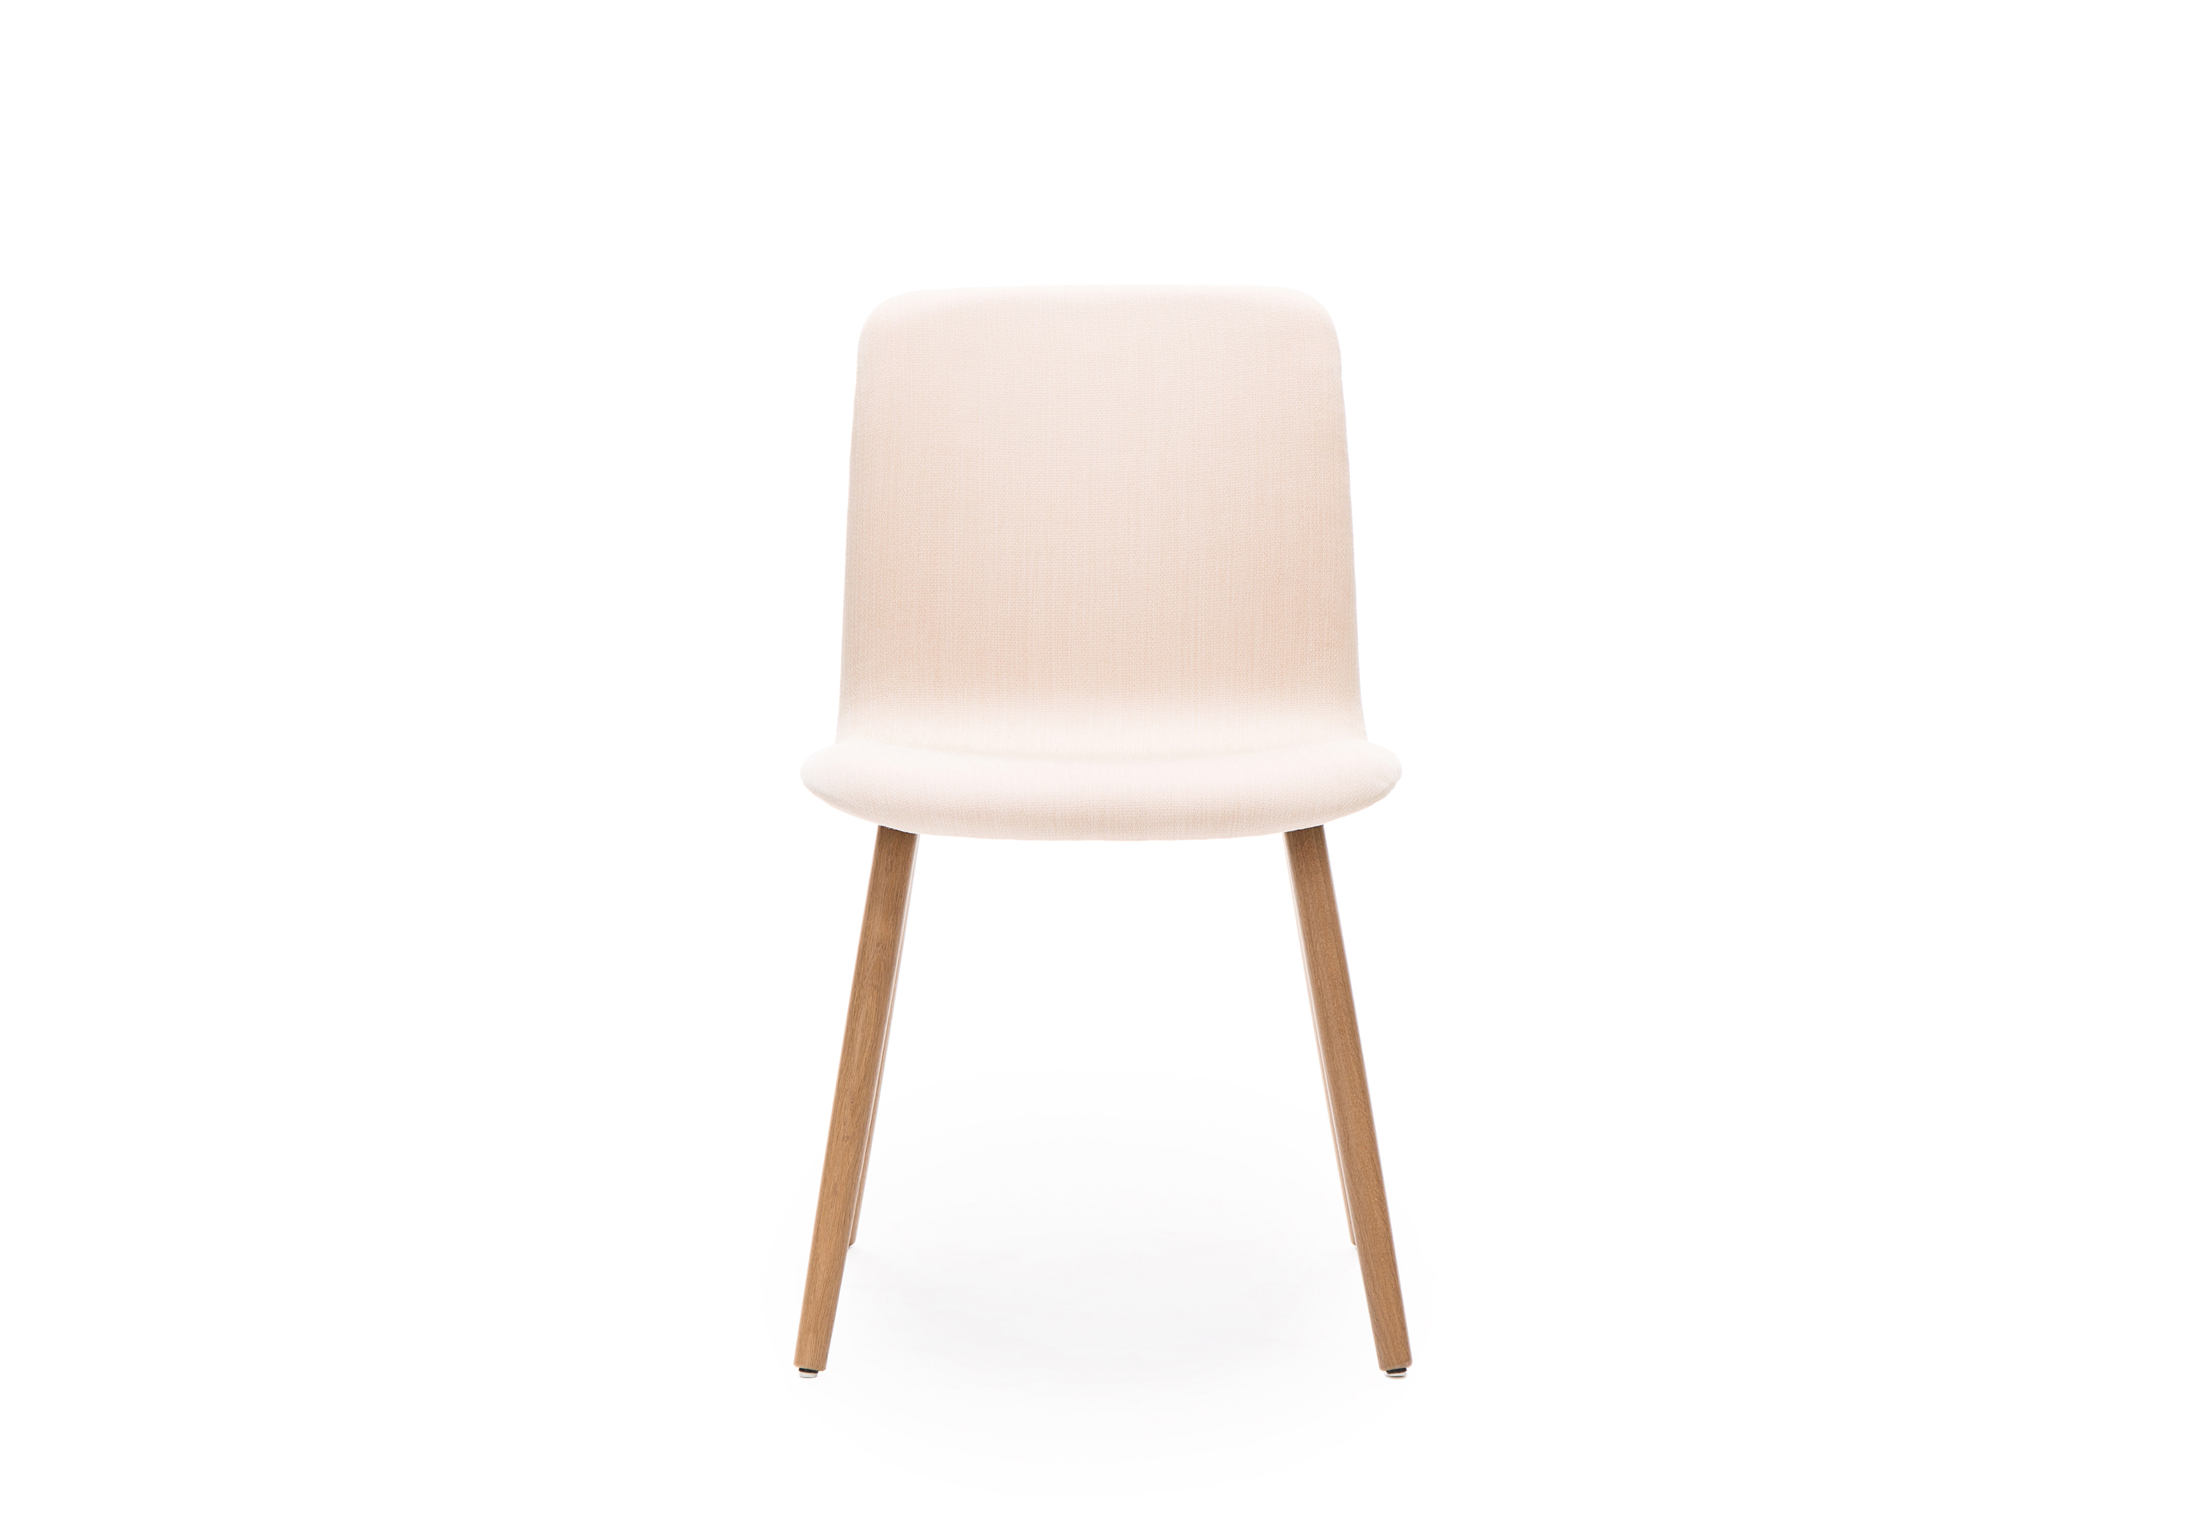 Sola Conference Chair With Wooden Legs By Martela Stylepark